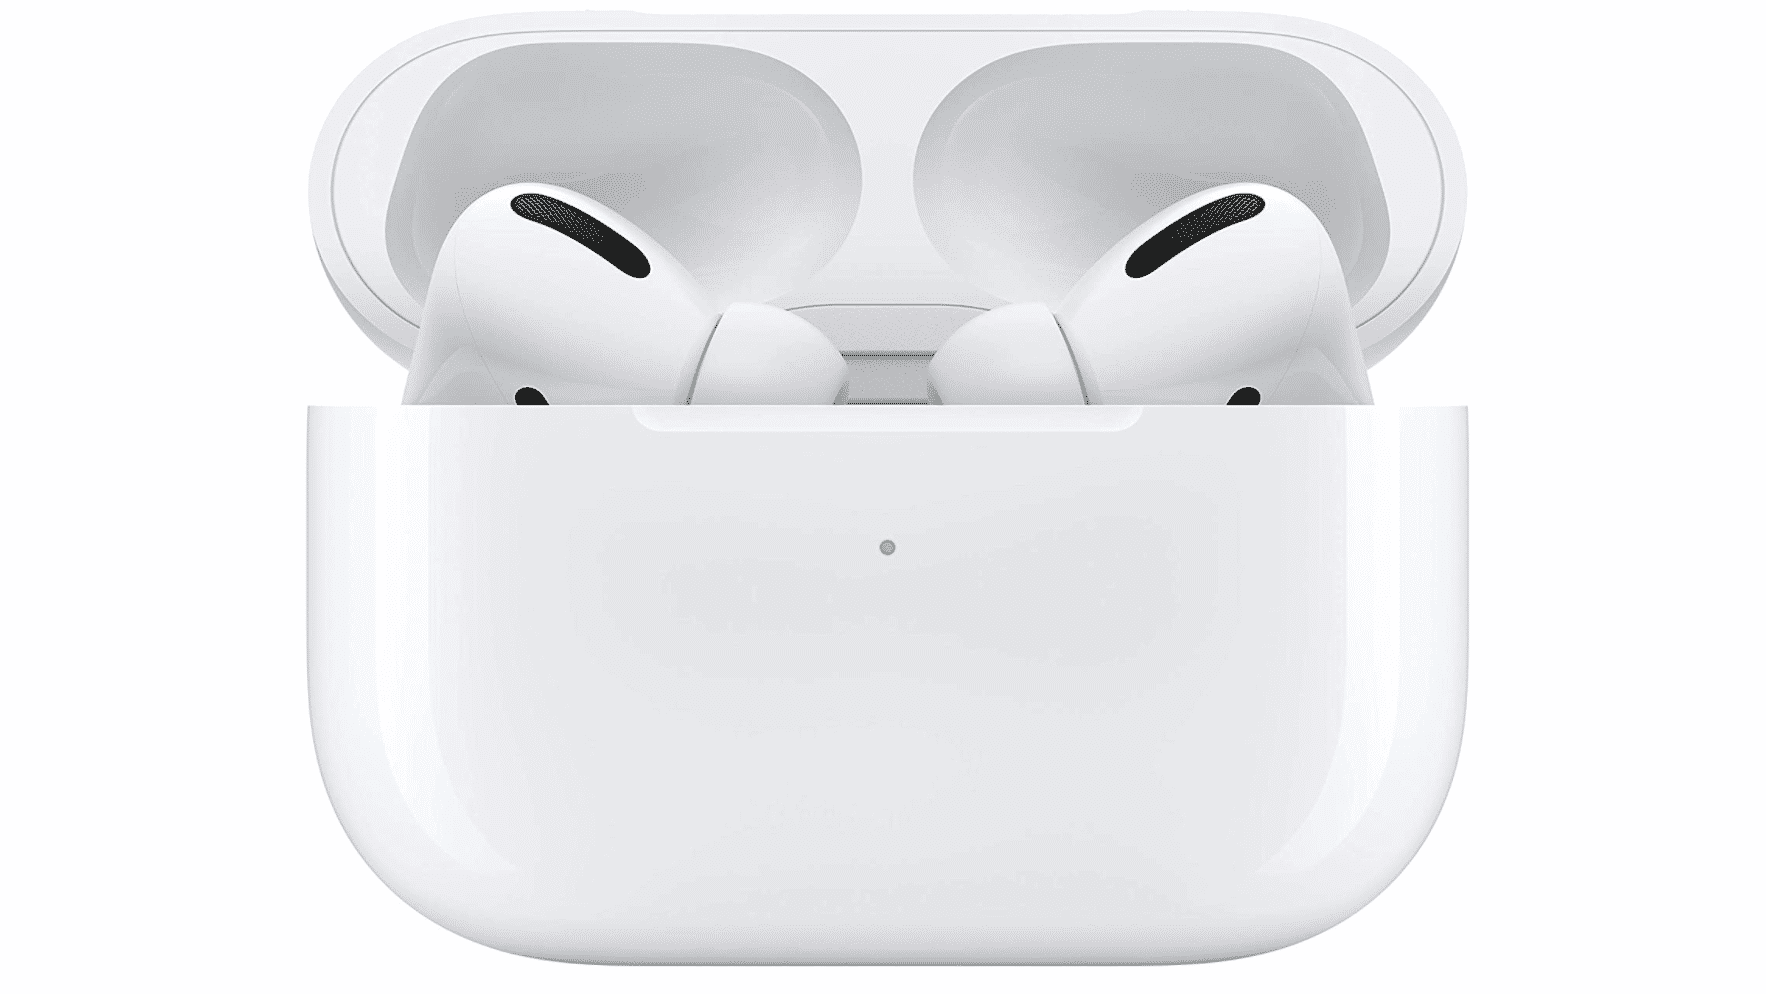 Does iPhone 13 come with AirPods